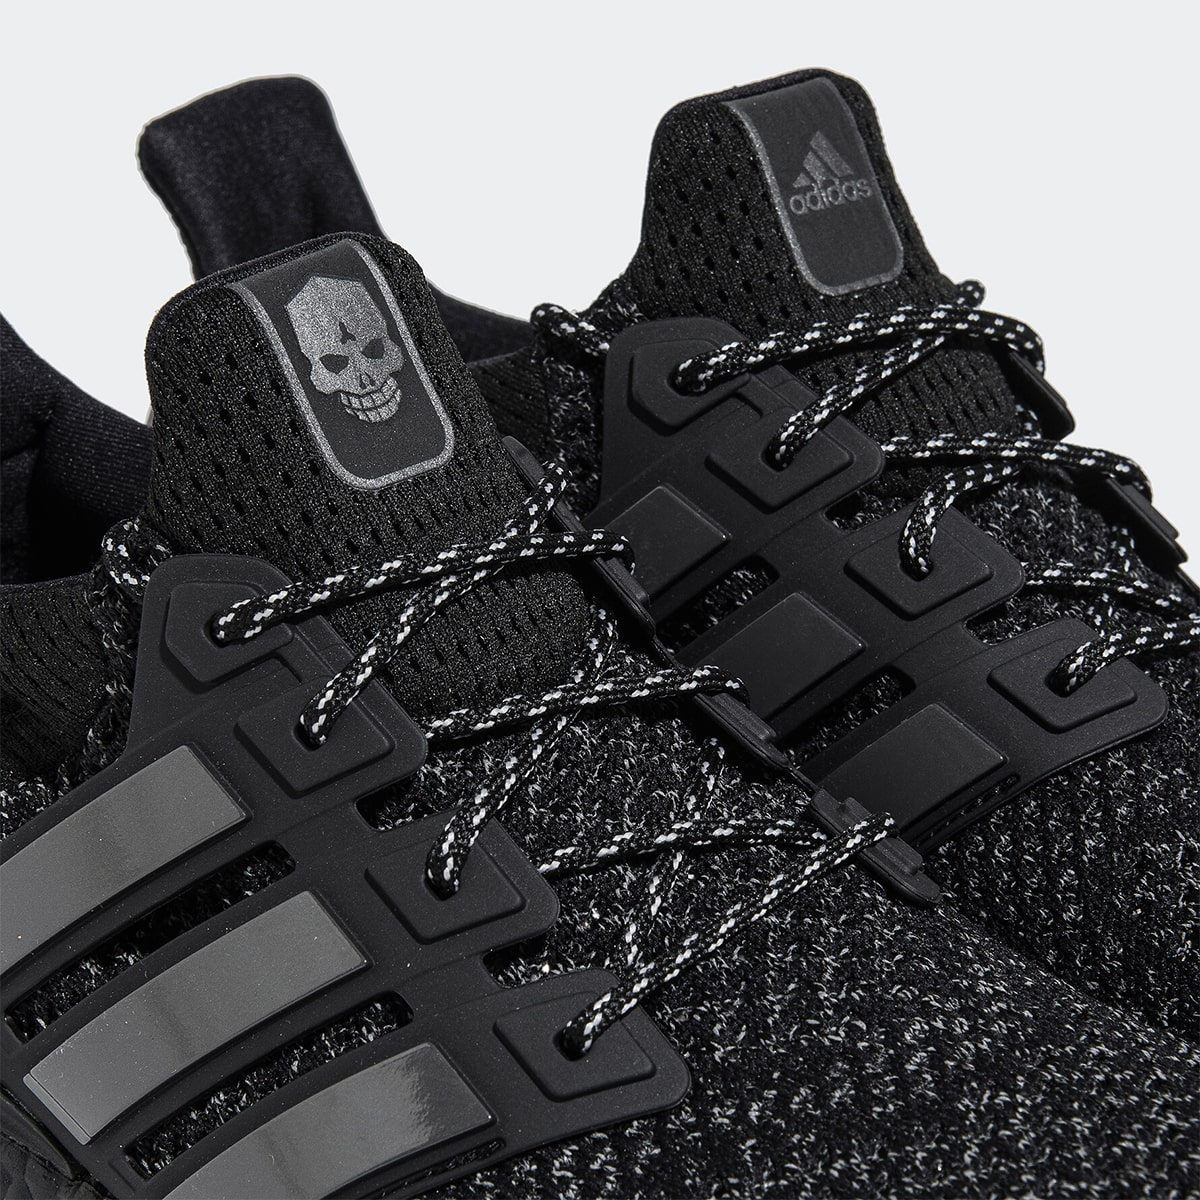 Korea's 'Show Me the Money' Get Their Very Own Ultra BOOST Collab ...